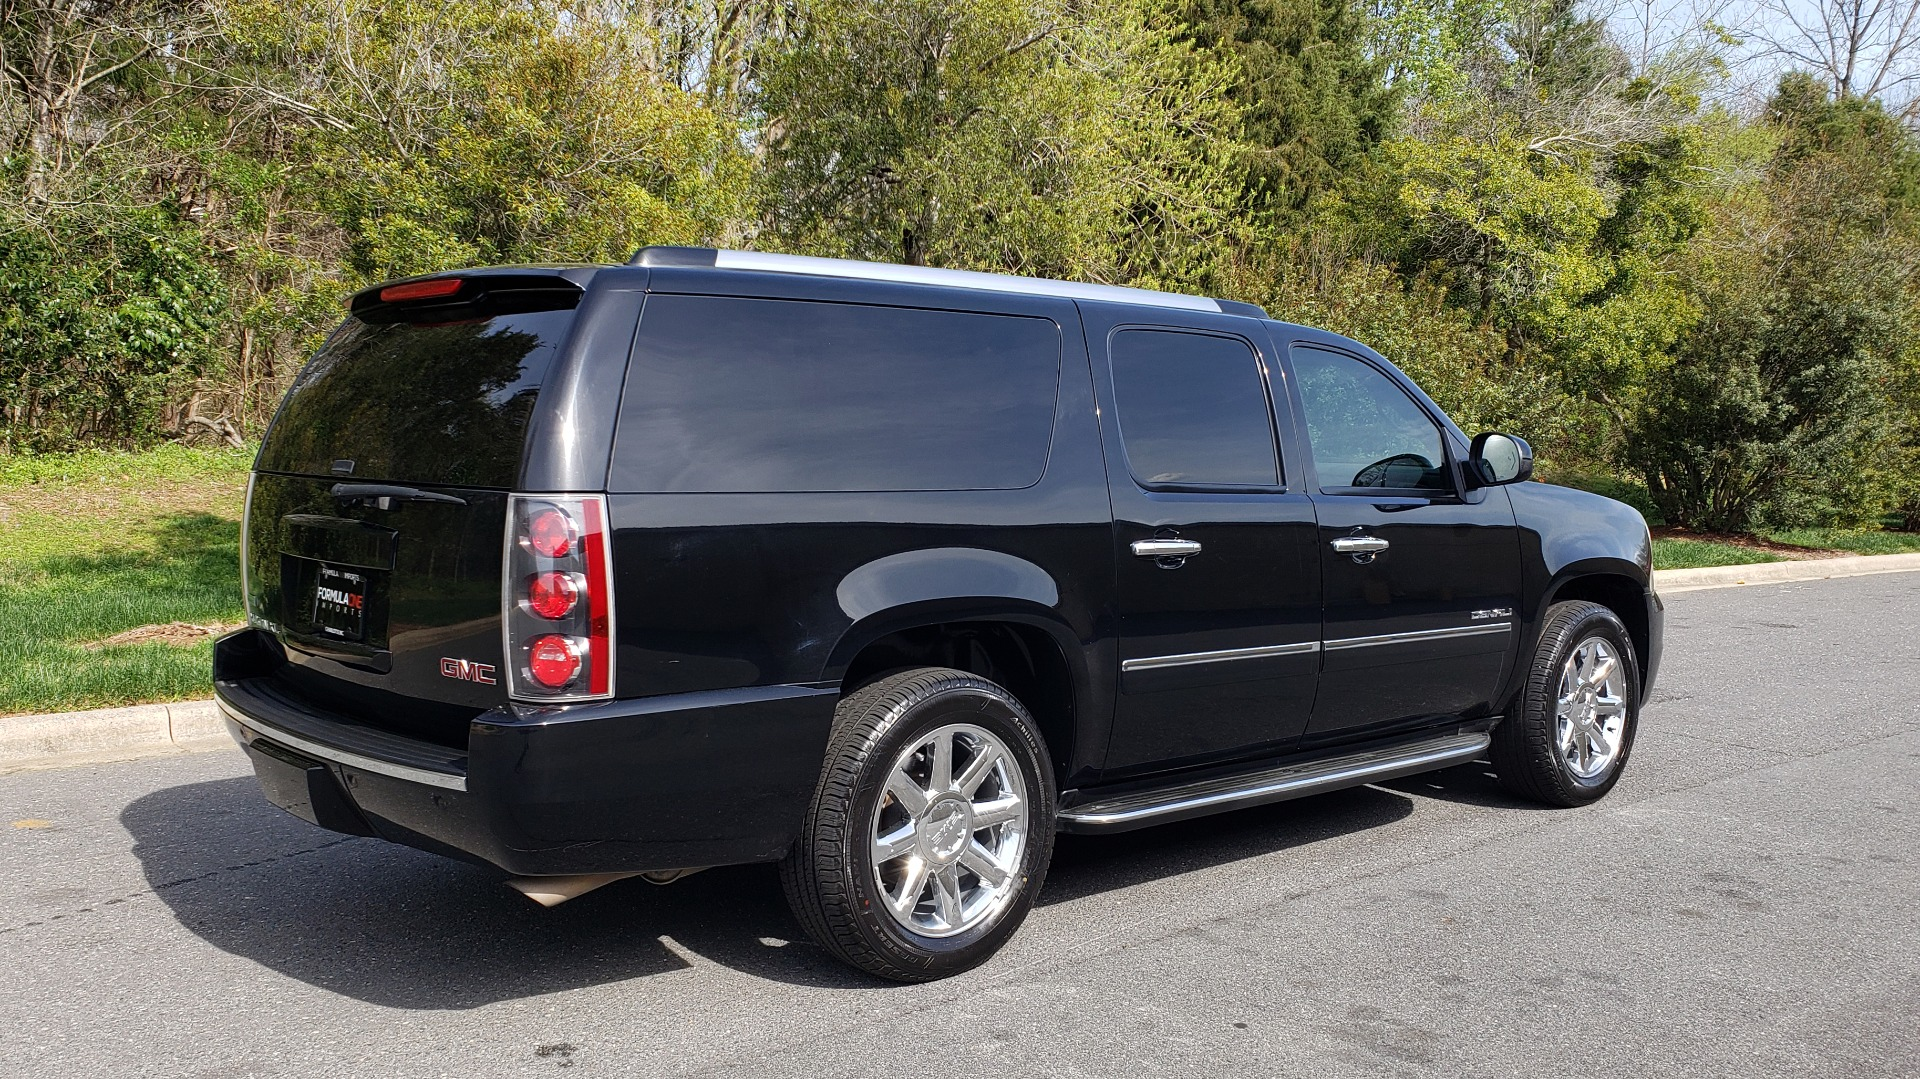 Used 2012 GMC YUKON XL DENALI AWD / NAV / SUN & ENT PKG / SUNROOF / REARVIEW / 3-ROW for sale Sold at Formula Imports in Charlotte NC 28227 6